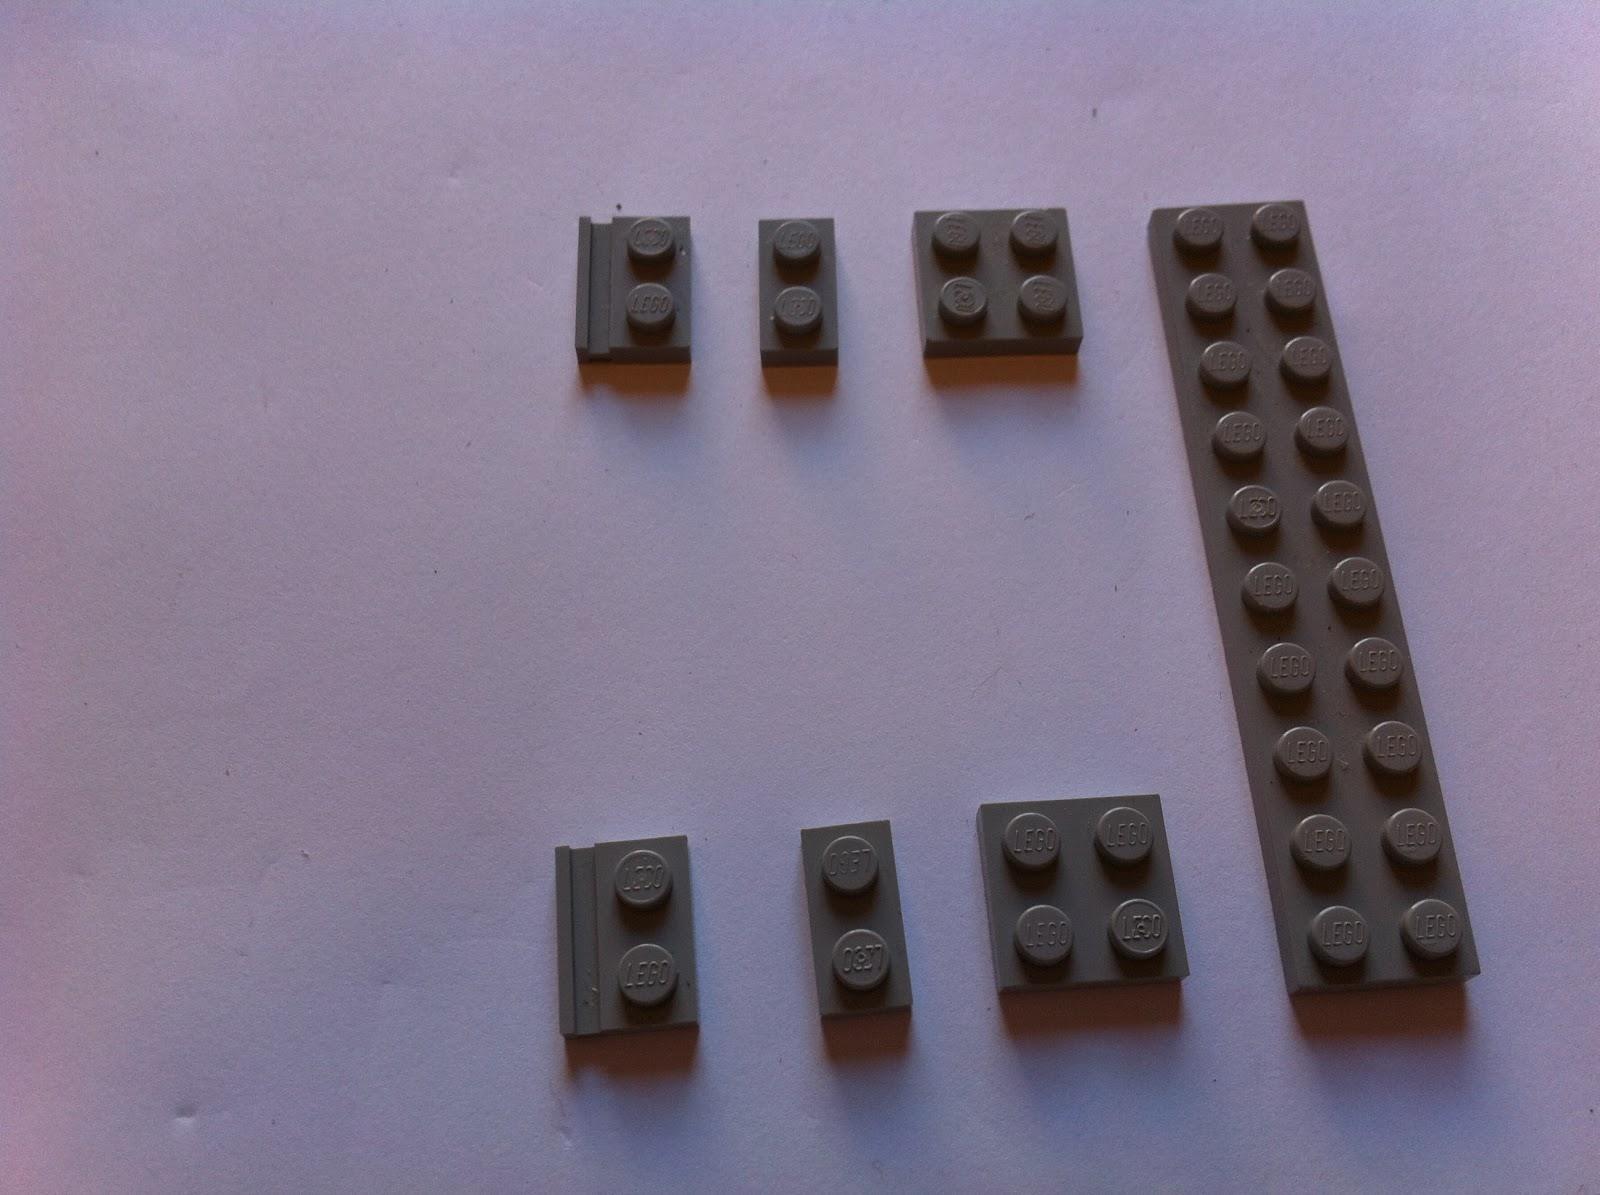 NEW x10 Lego Black Plate Modified 2 x 2 with Hole NXT